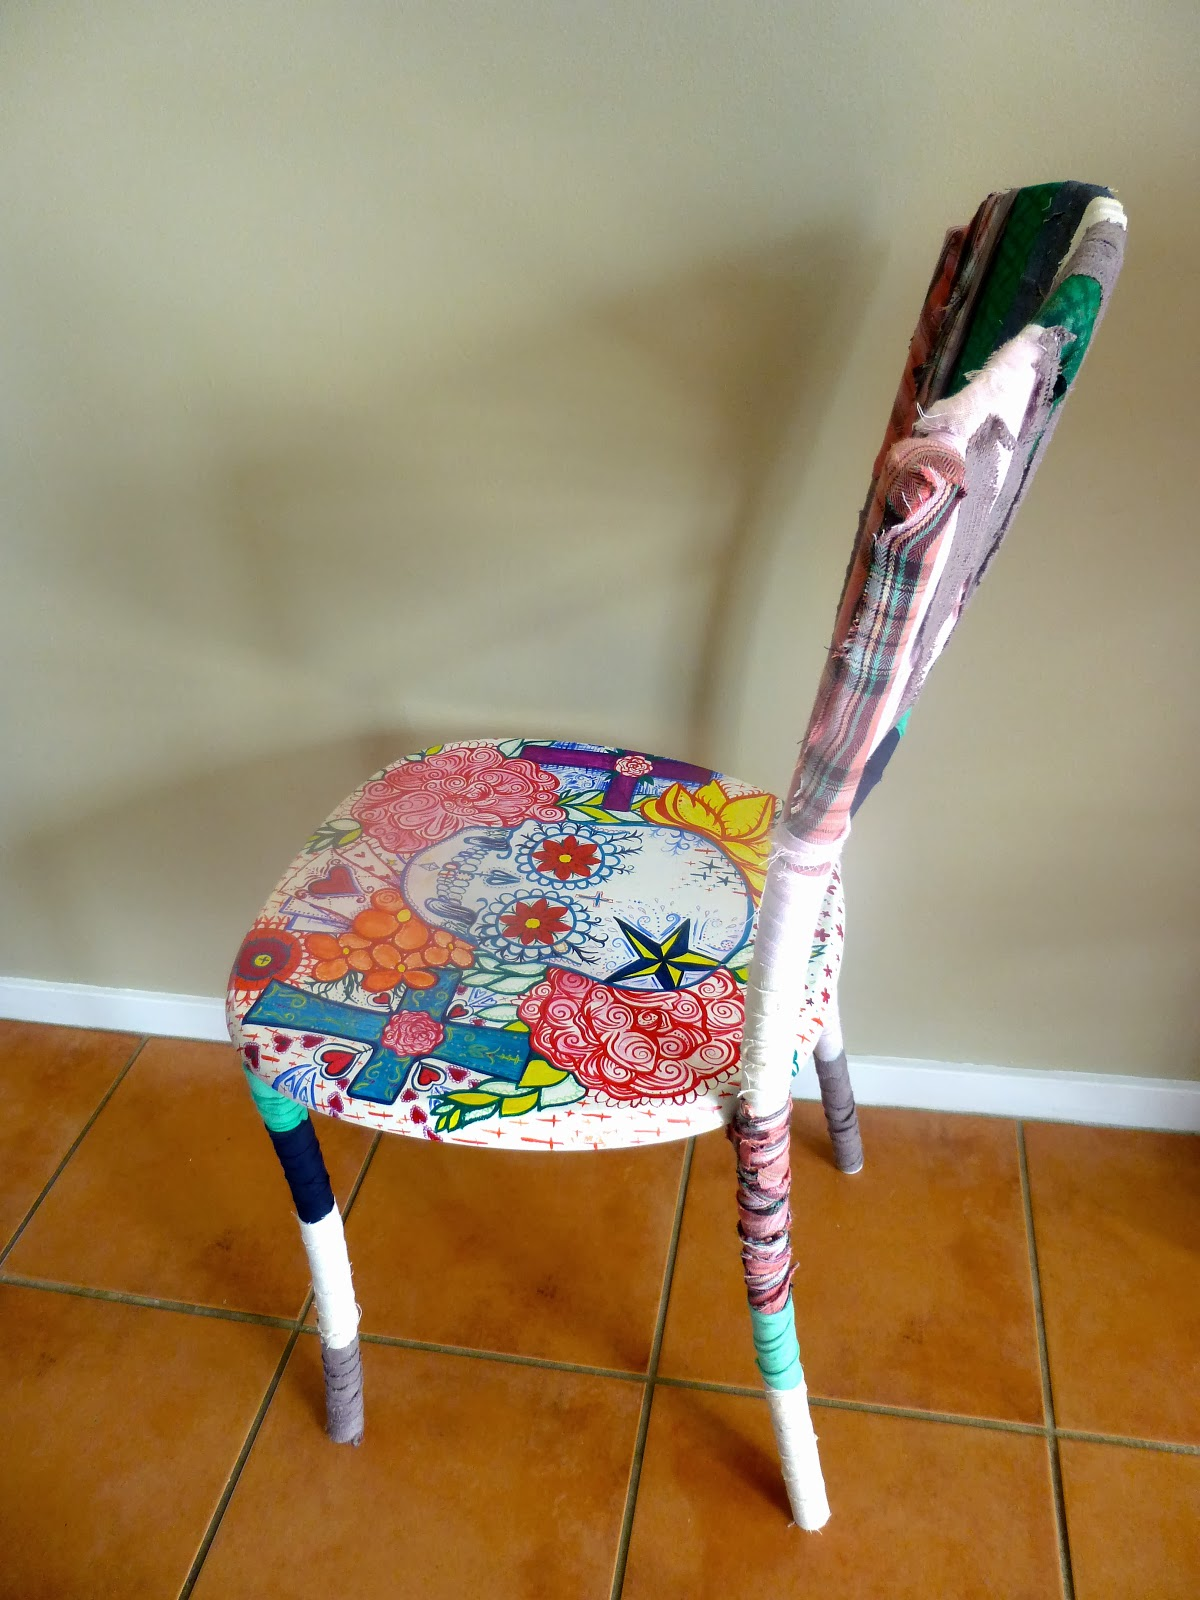 Tattoo Artist Chair Zora Swivel Illustrator Of All Thing Magical And Creative